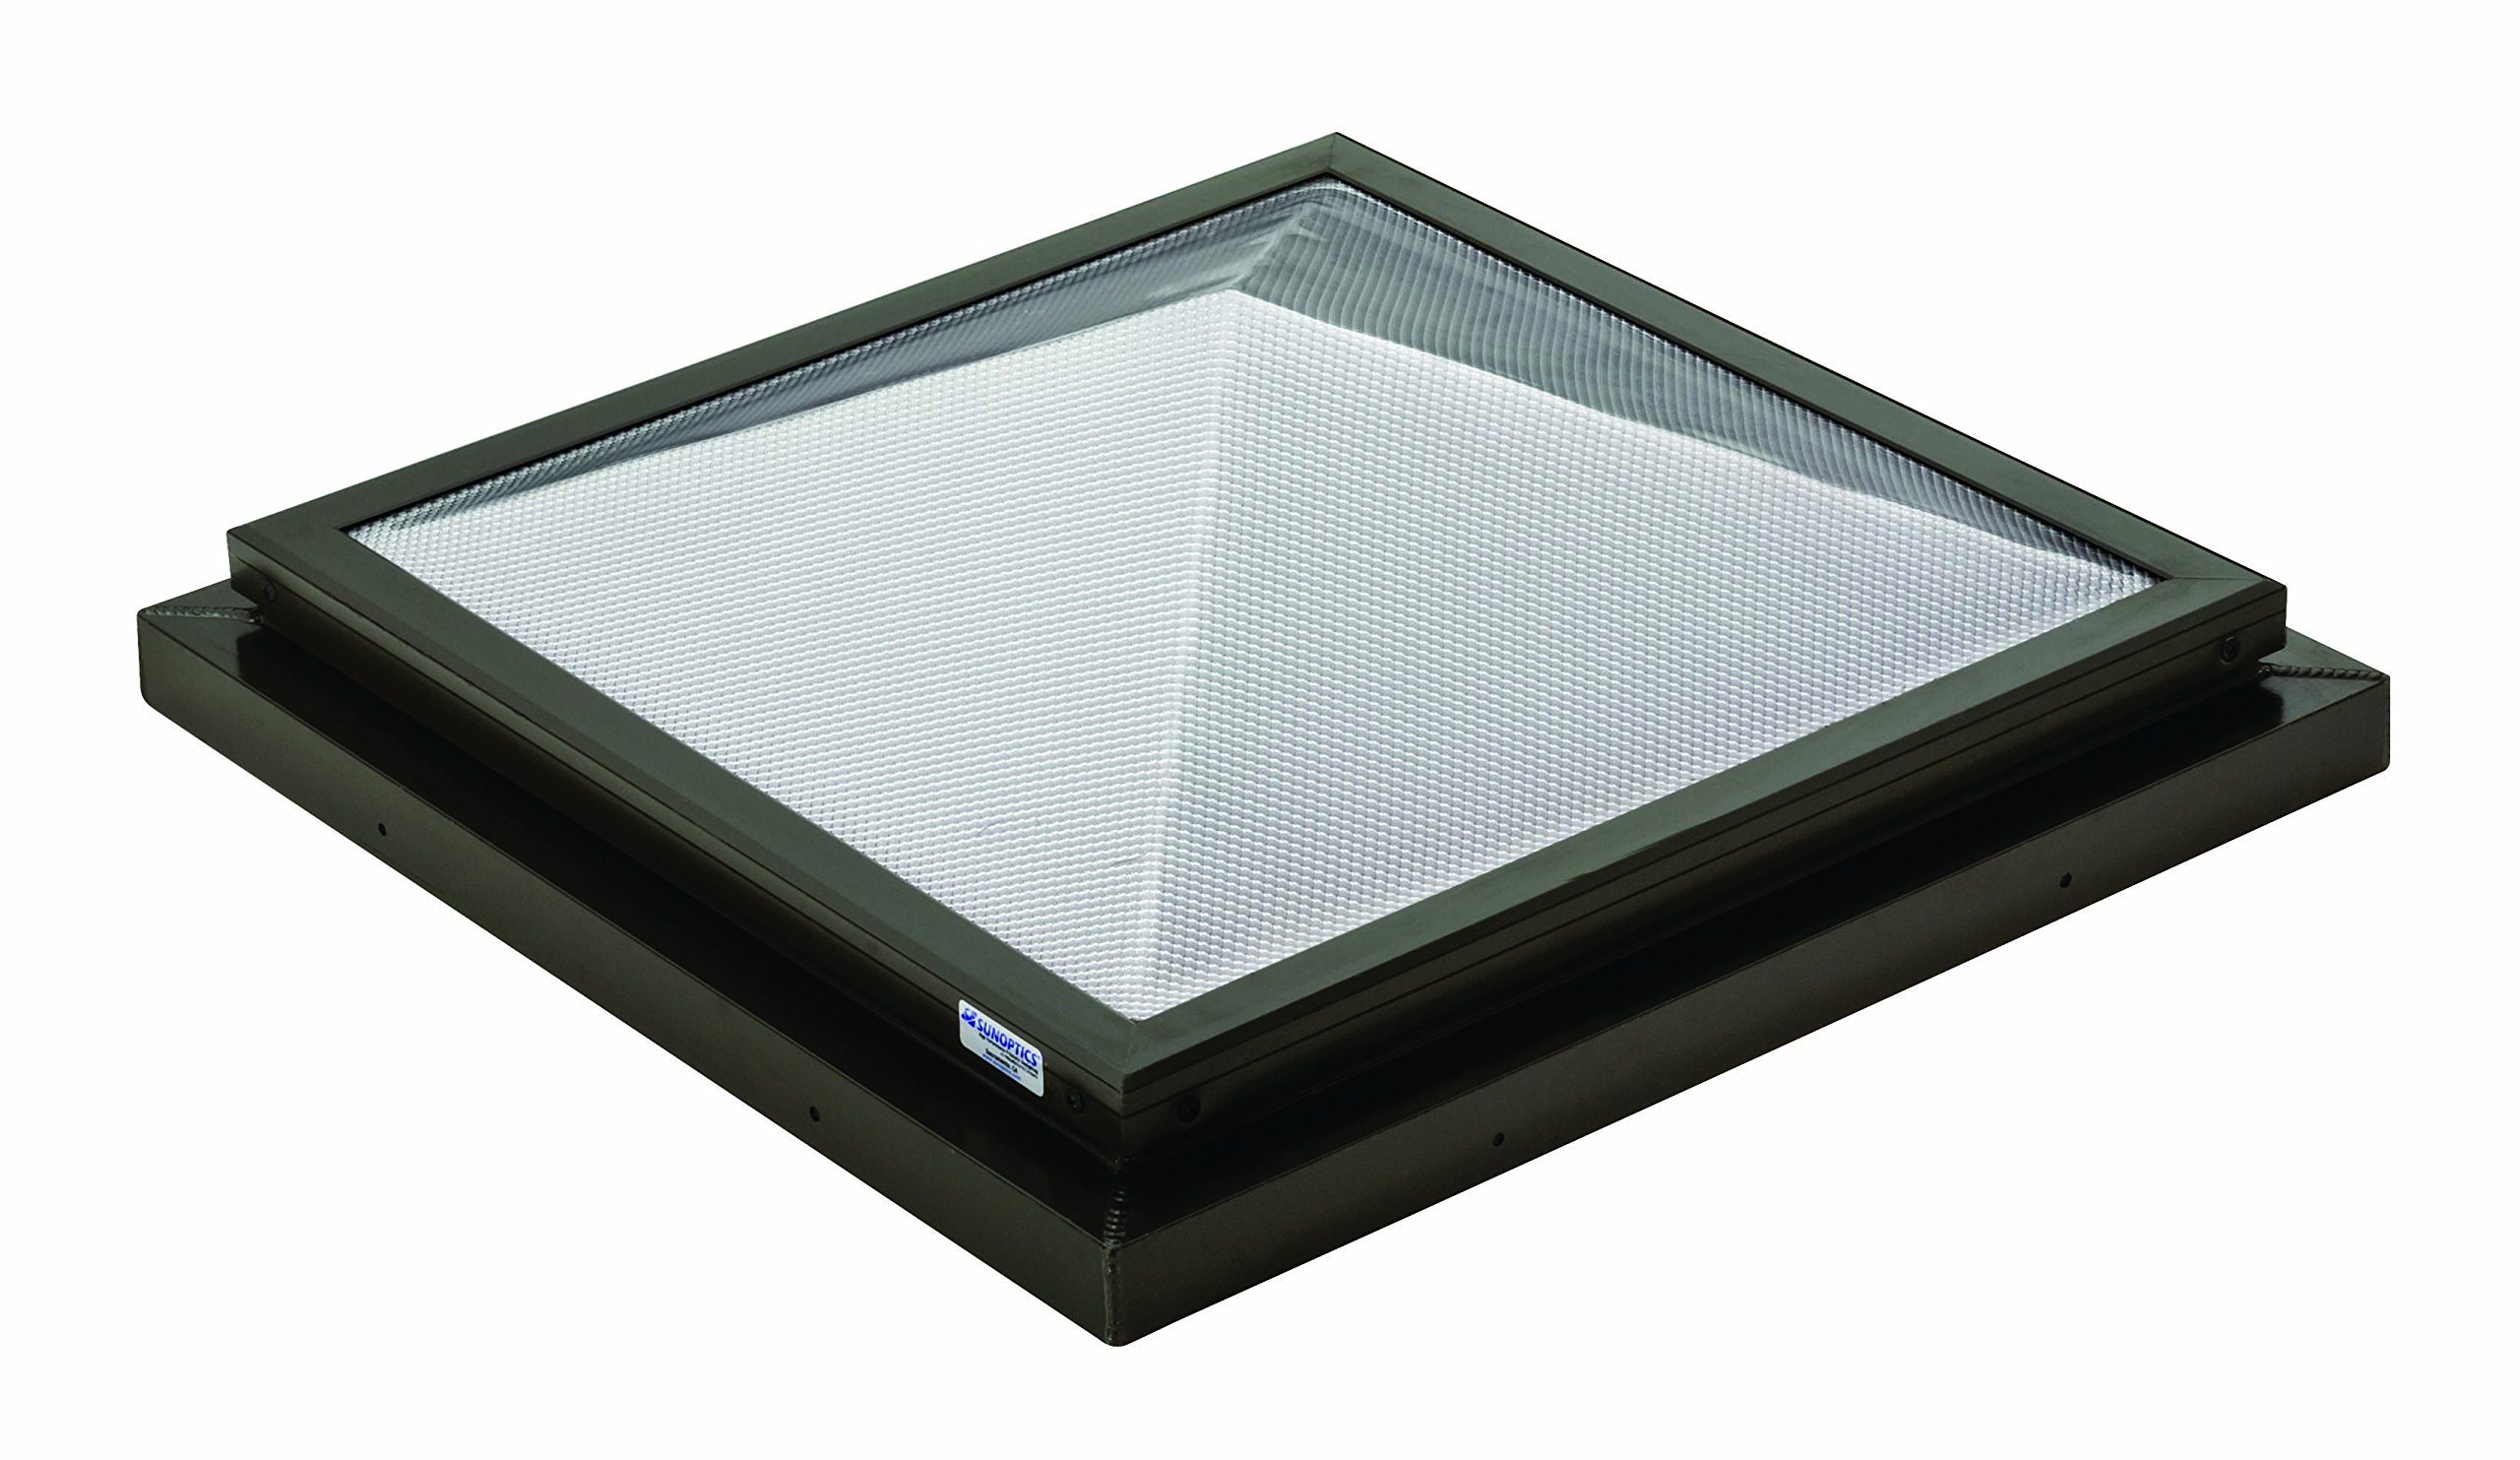 Sunoptics SUN R2020 PYL TGZ 50CC2 800MD BZ  2-Feet by 2-Feet Triple Glazed Fixed Curb-Mounted Prismatic Pyramid Skylight, Bronze by Sunoptics